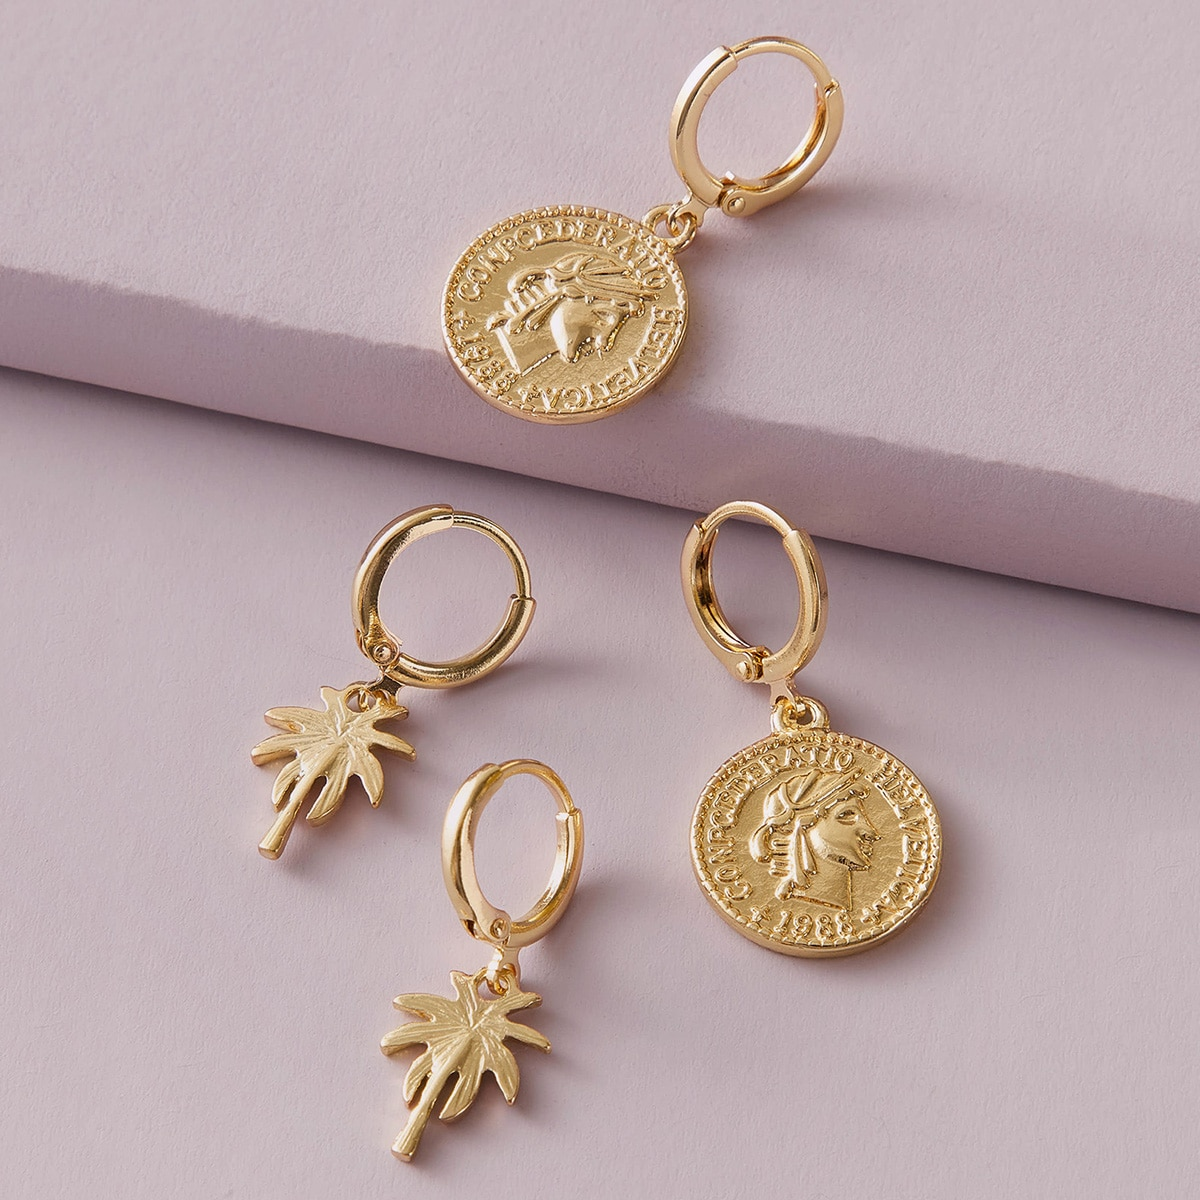 2pairs Coconut Tree & Coin Drop Earrings